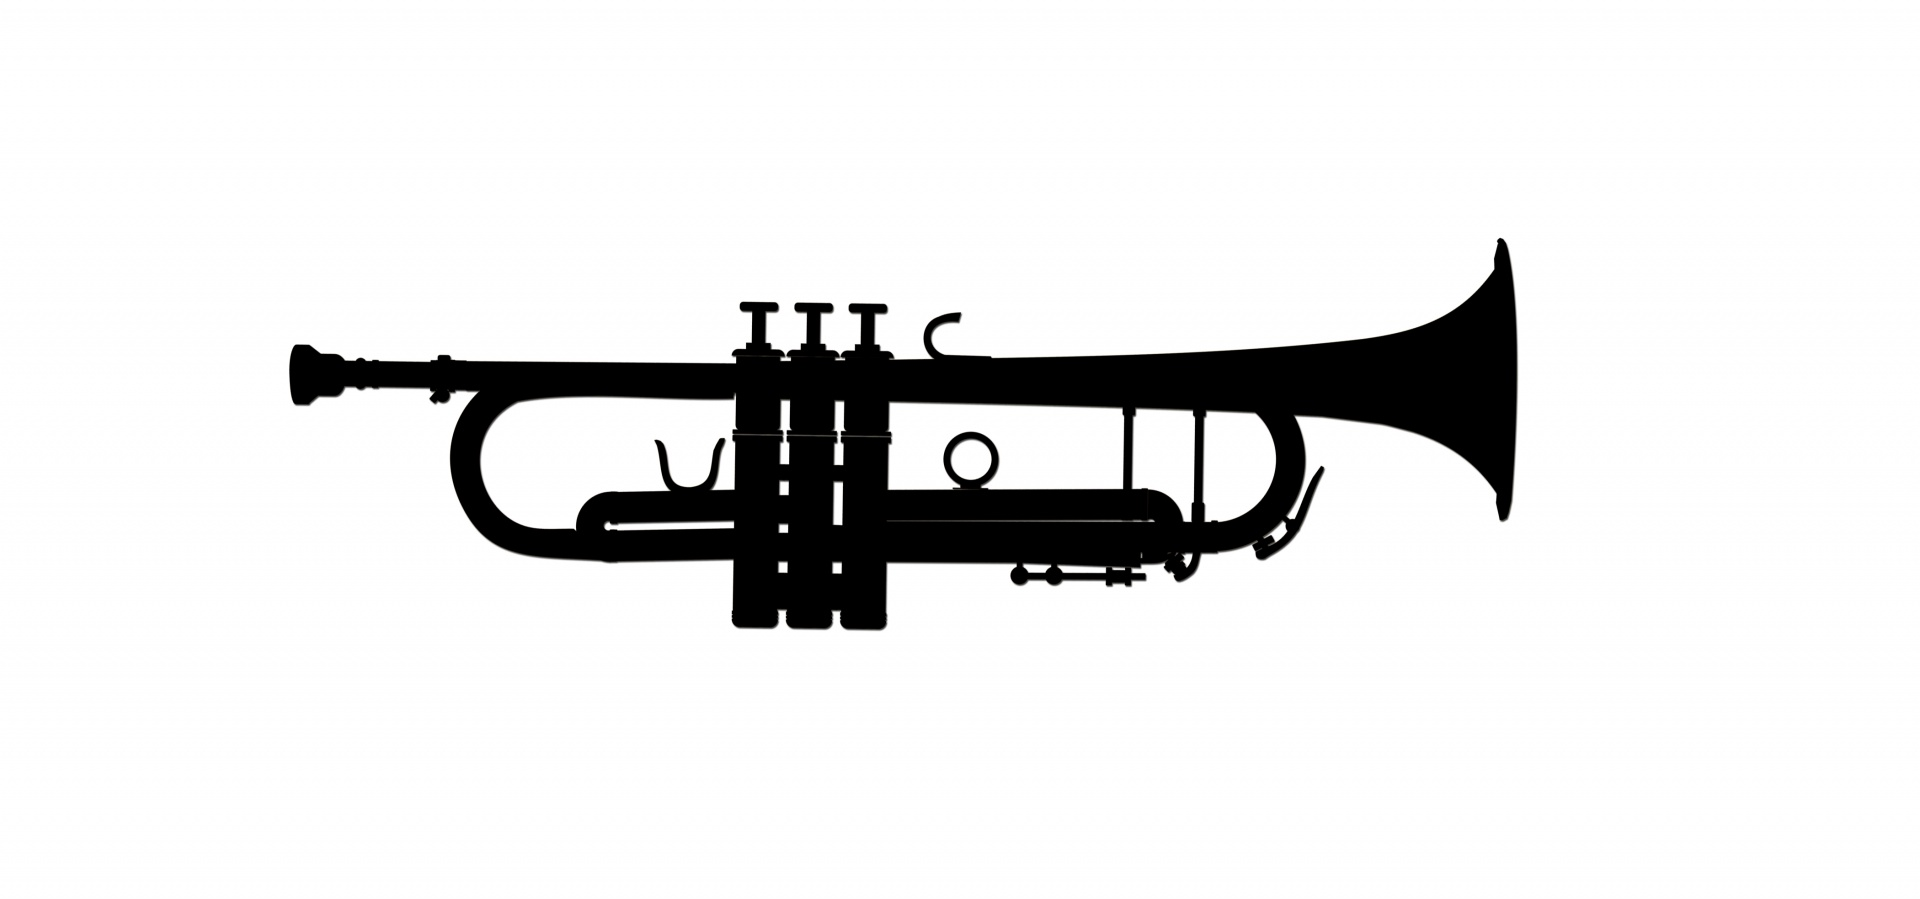 Trumpet player silhouette clipart clip library Trumpet,instrument,music,musical,musical instrument - free ... clip library